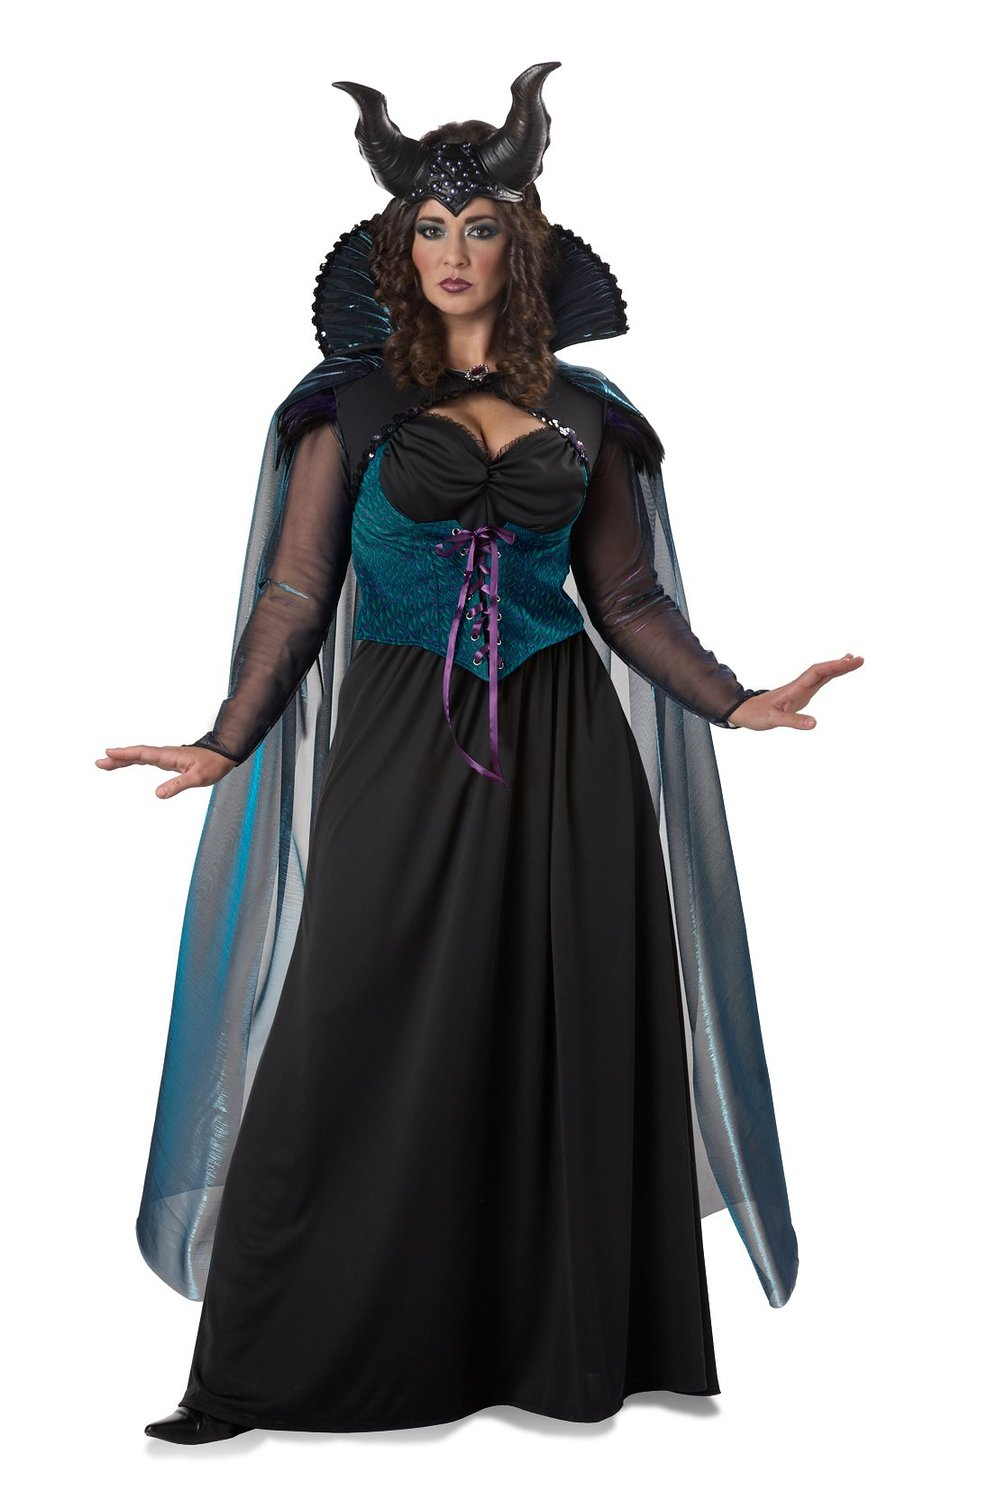 Flaunt your curves and your personal style in one of these Women's Plus Size Costumes from Candy Apple Costumes. Each of these costumes is specially-designed to fit plus size frames and flatter your shape, so whether you're looking for a Halloween costume, themed dinner party costume or an outfit for any other special occasion, we've got you covered.